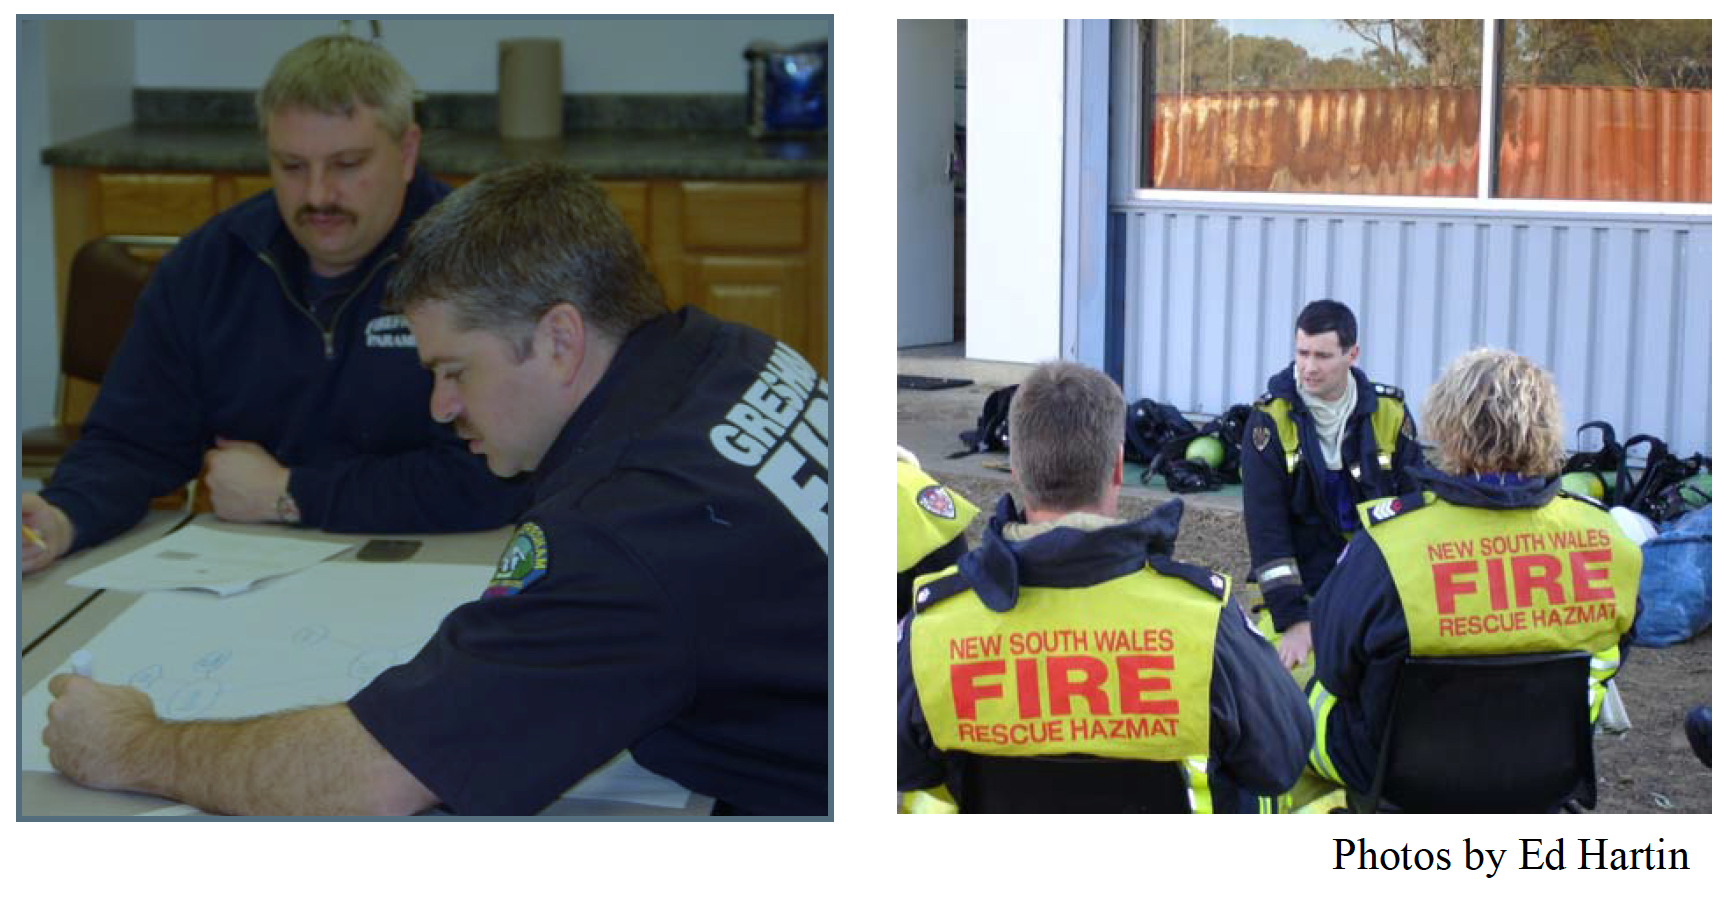 Firefighters and officers in Gresham, Oregon use fire behavior theory and their personal experience to develop a concept map illustrating fire behavior indicators during CFBT (below left). John McDonough (Australia) debriefs participants on their observations following a CFBT